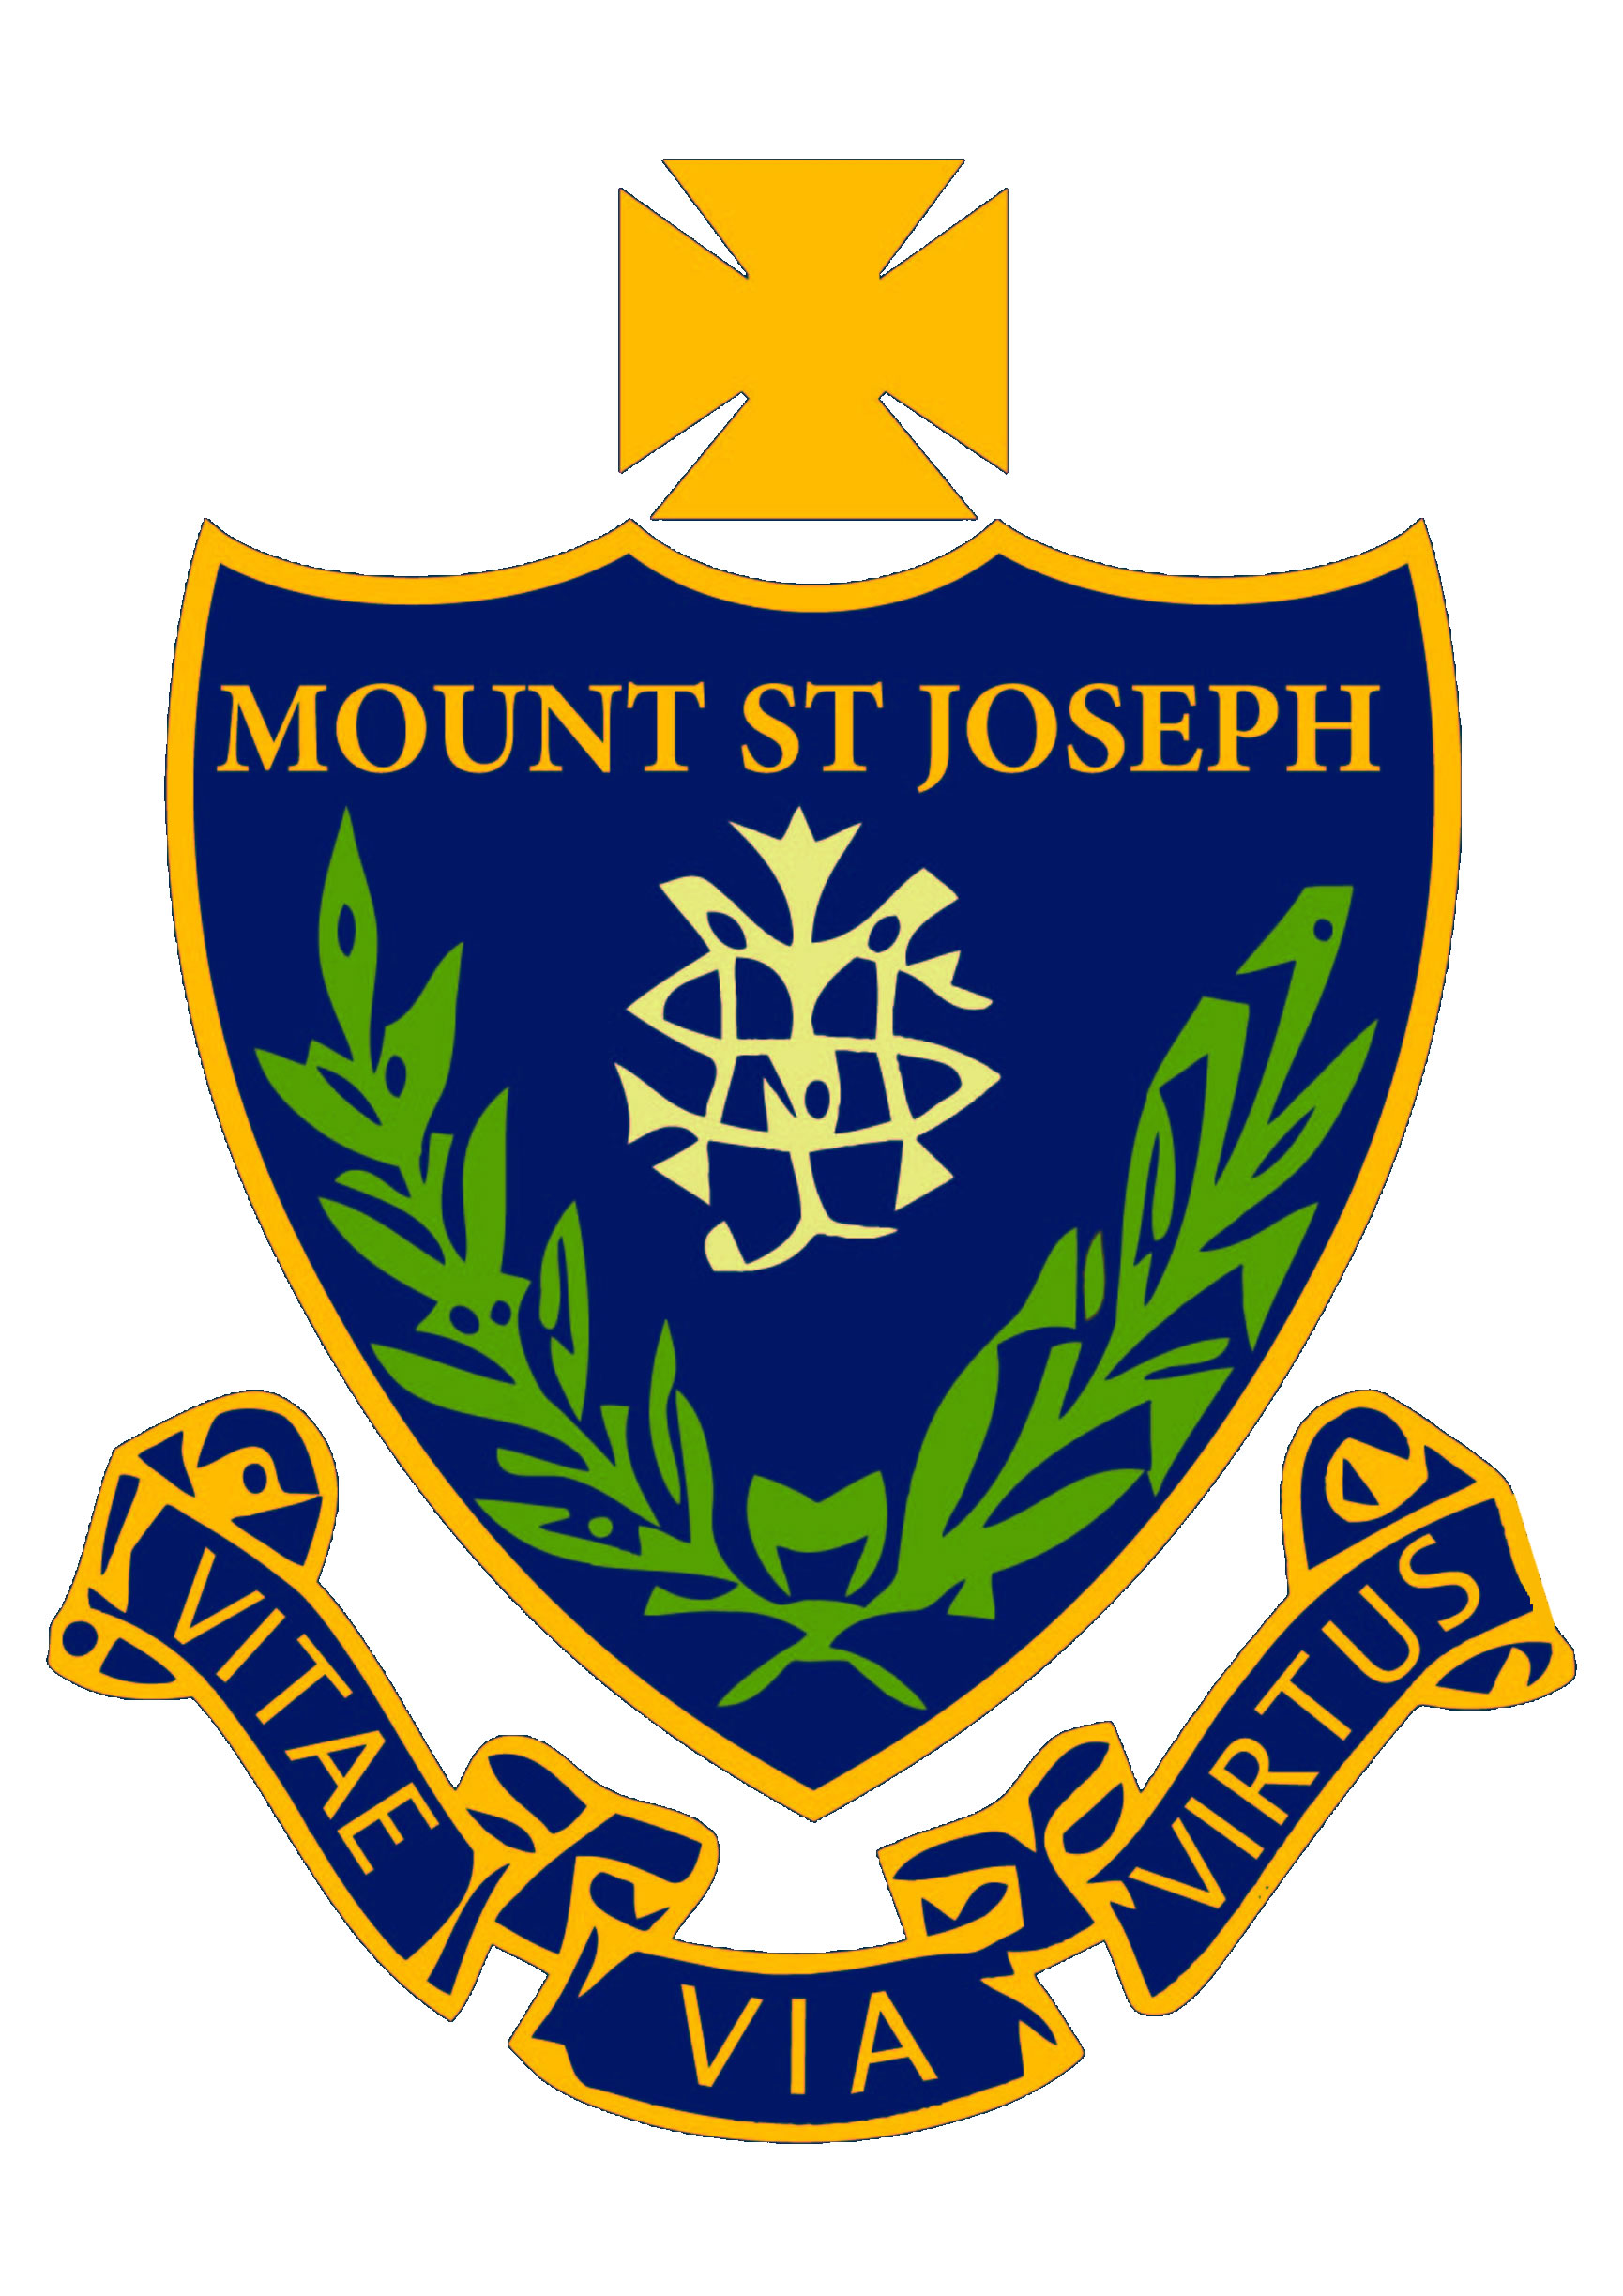 mount saint joseph catholic singles Mount saint joseph college (commonly saint joe or mount saint joe) is a catholic college preparatory school and secondary school / high school for young men from ninth to twelfth grade sponsored by the xaverian brothers and founded in 1876, it is located within the archdiocese of baltimore, maryland.